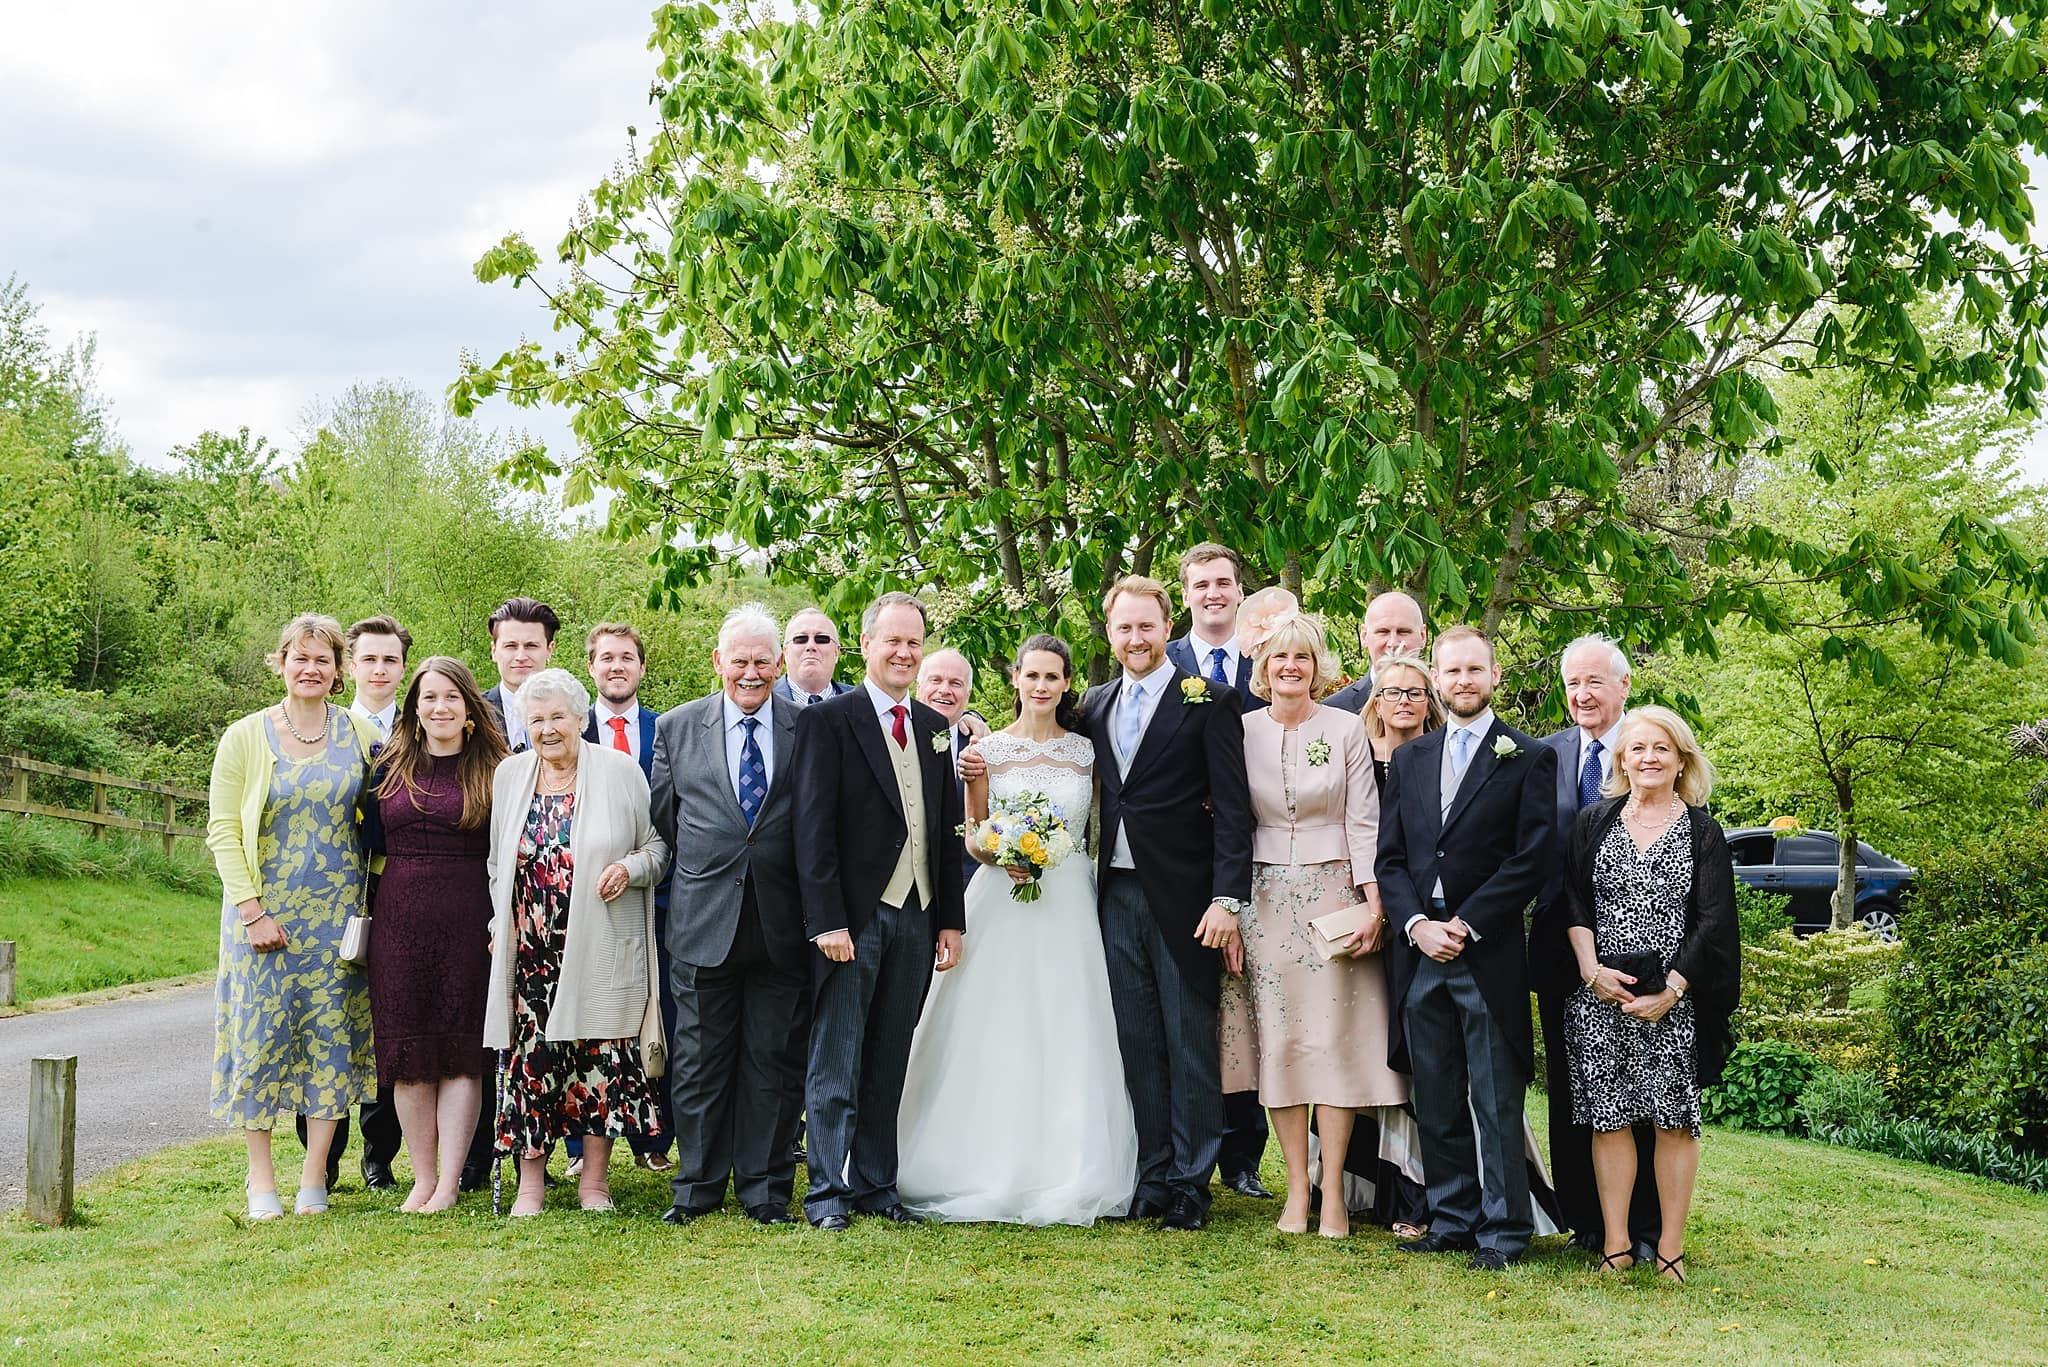 A formal family photo on a wedding day at Wick Farm Bath